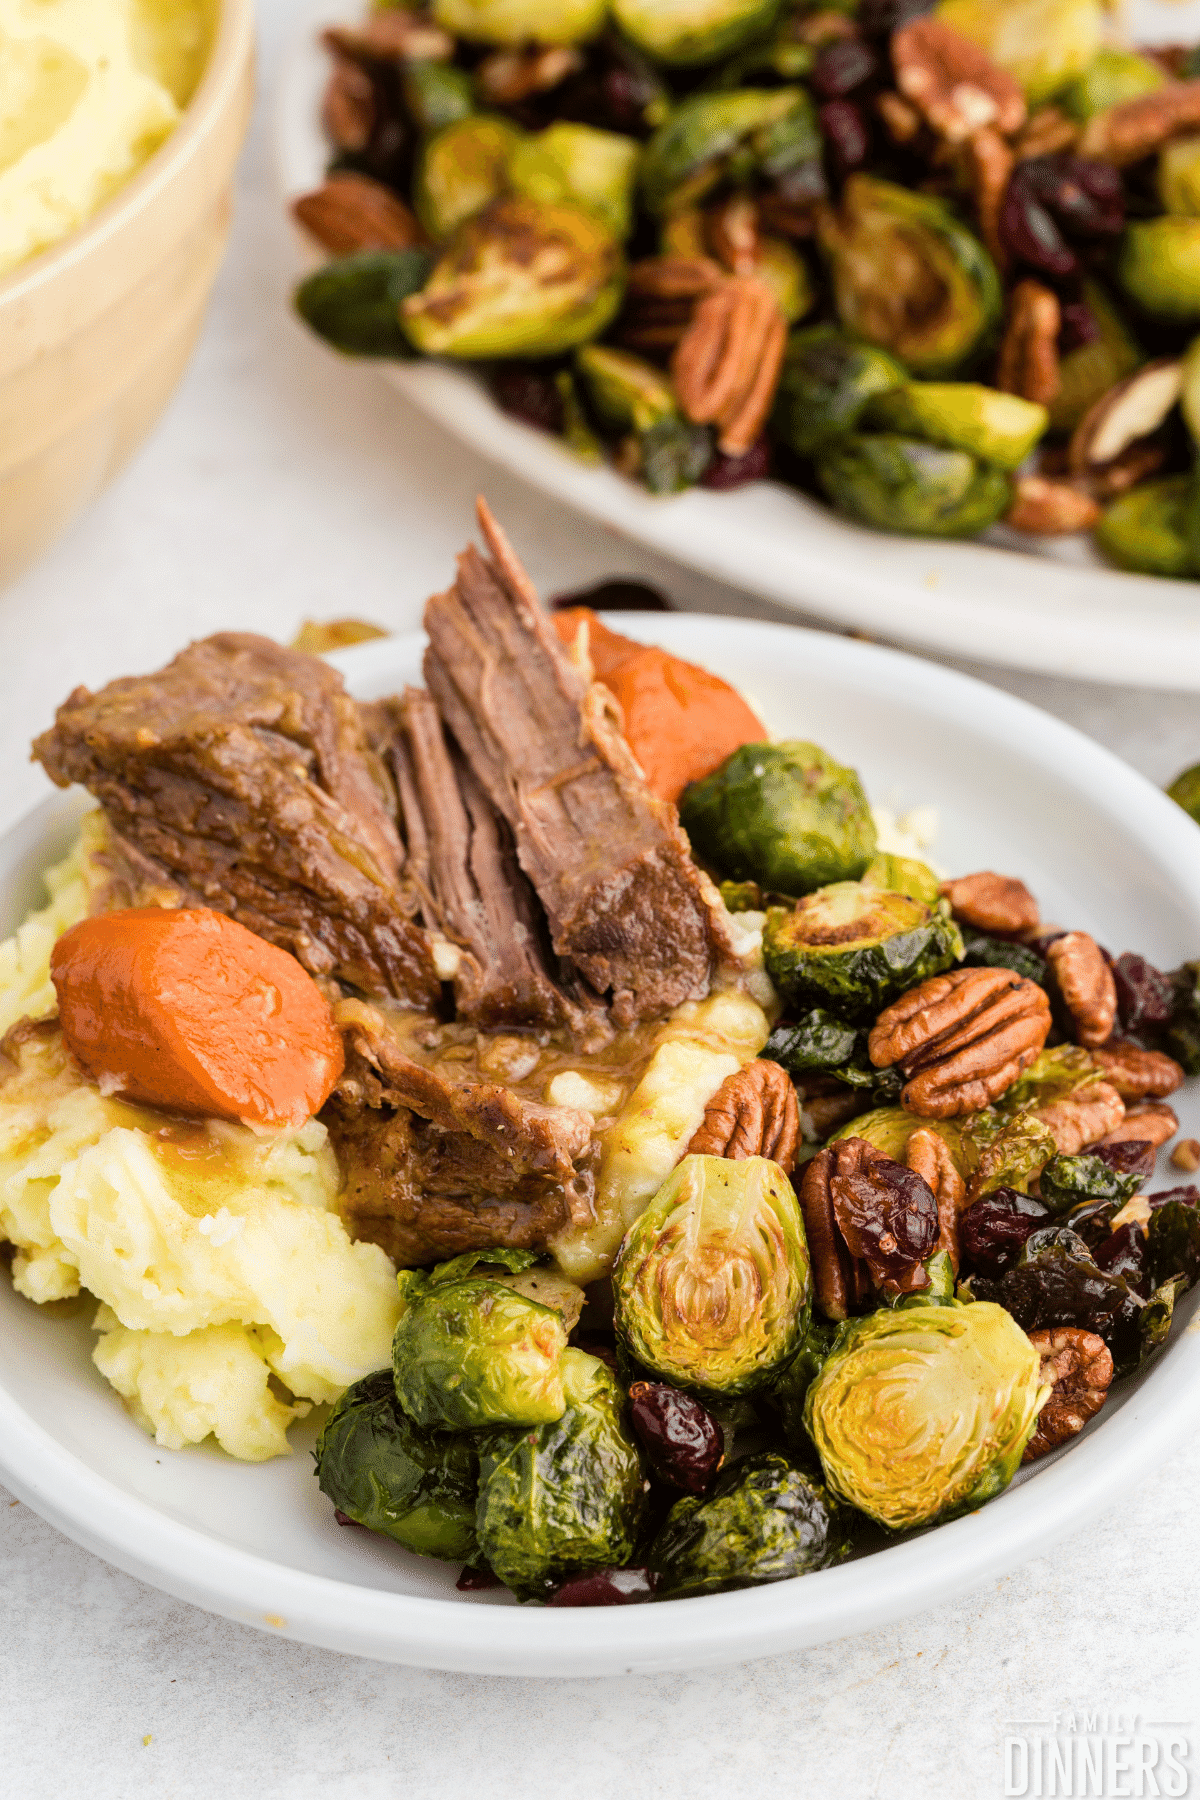 plate full of roasted golden Brussels sprouts, roast, carrots and creamy mashed potatoes recipe